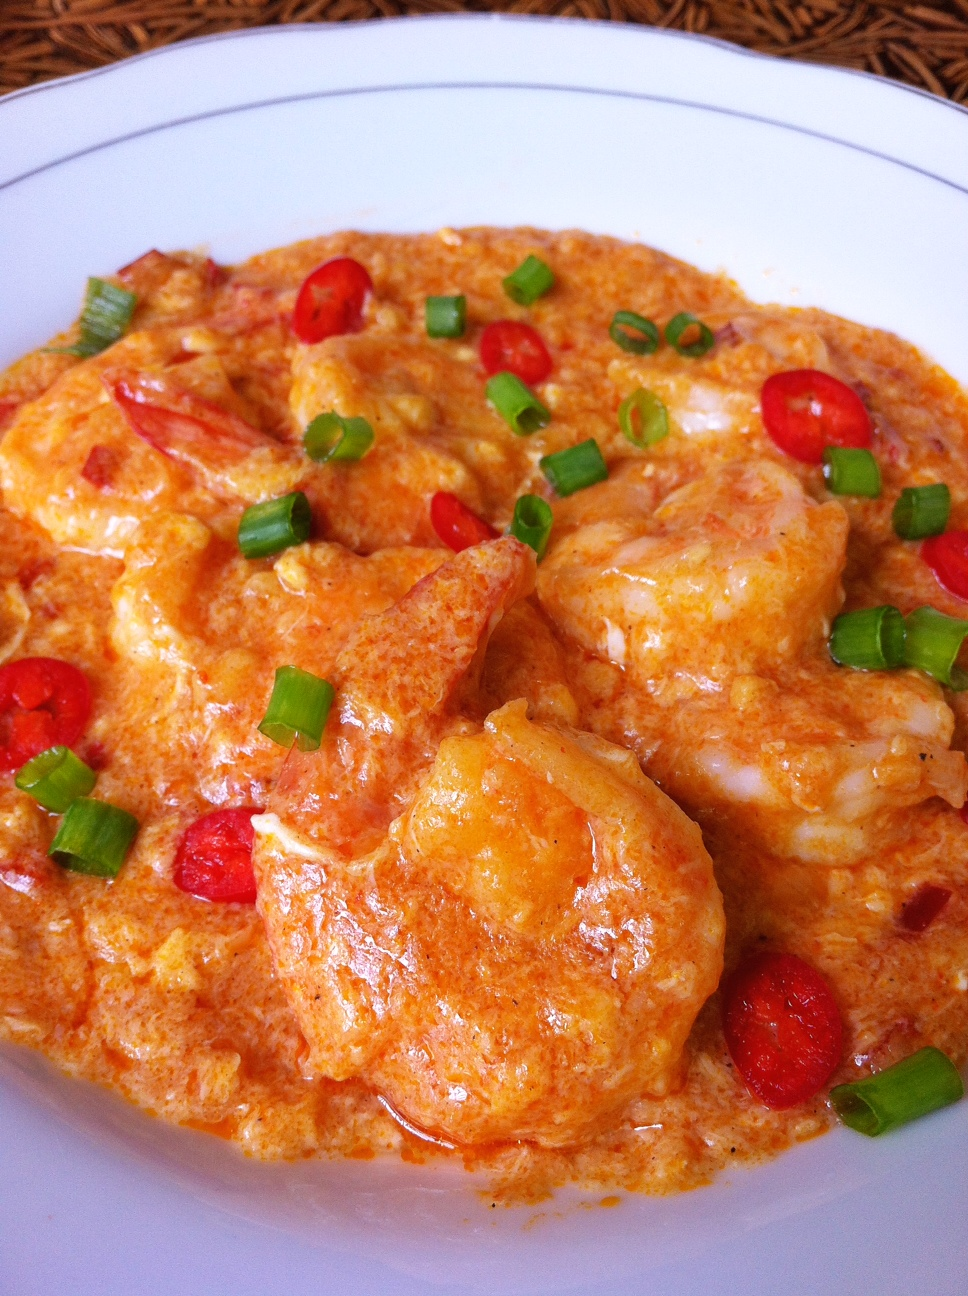 Singapore Chili Prawns Recipes — Dishmaps